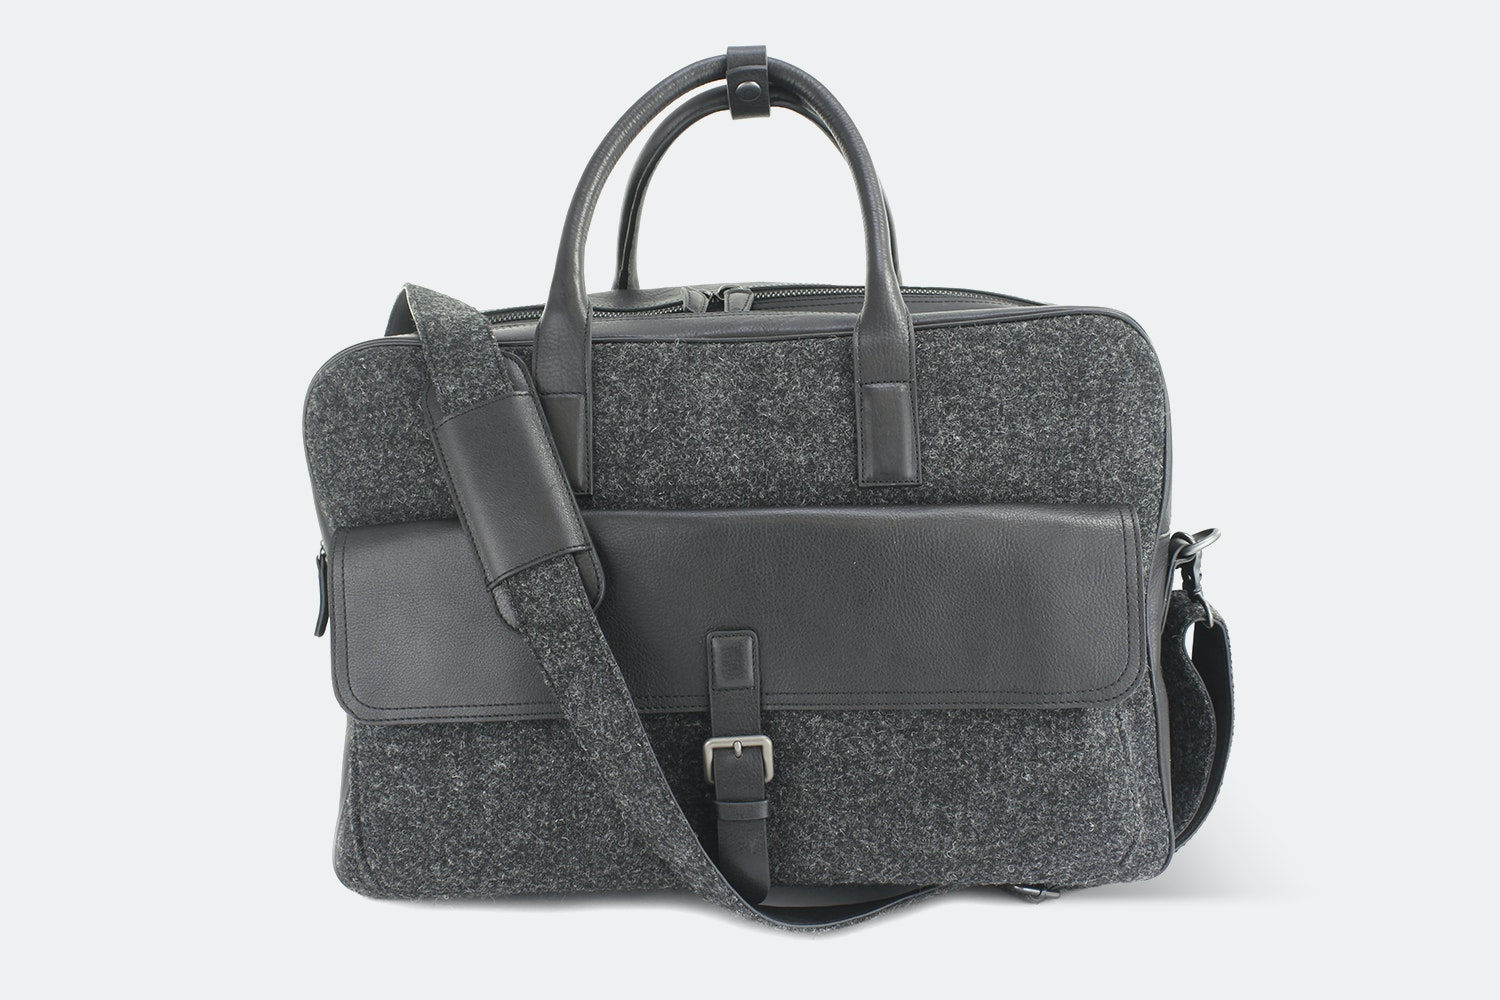 The British Belt Co. Harris Tweed Bags